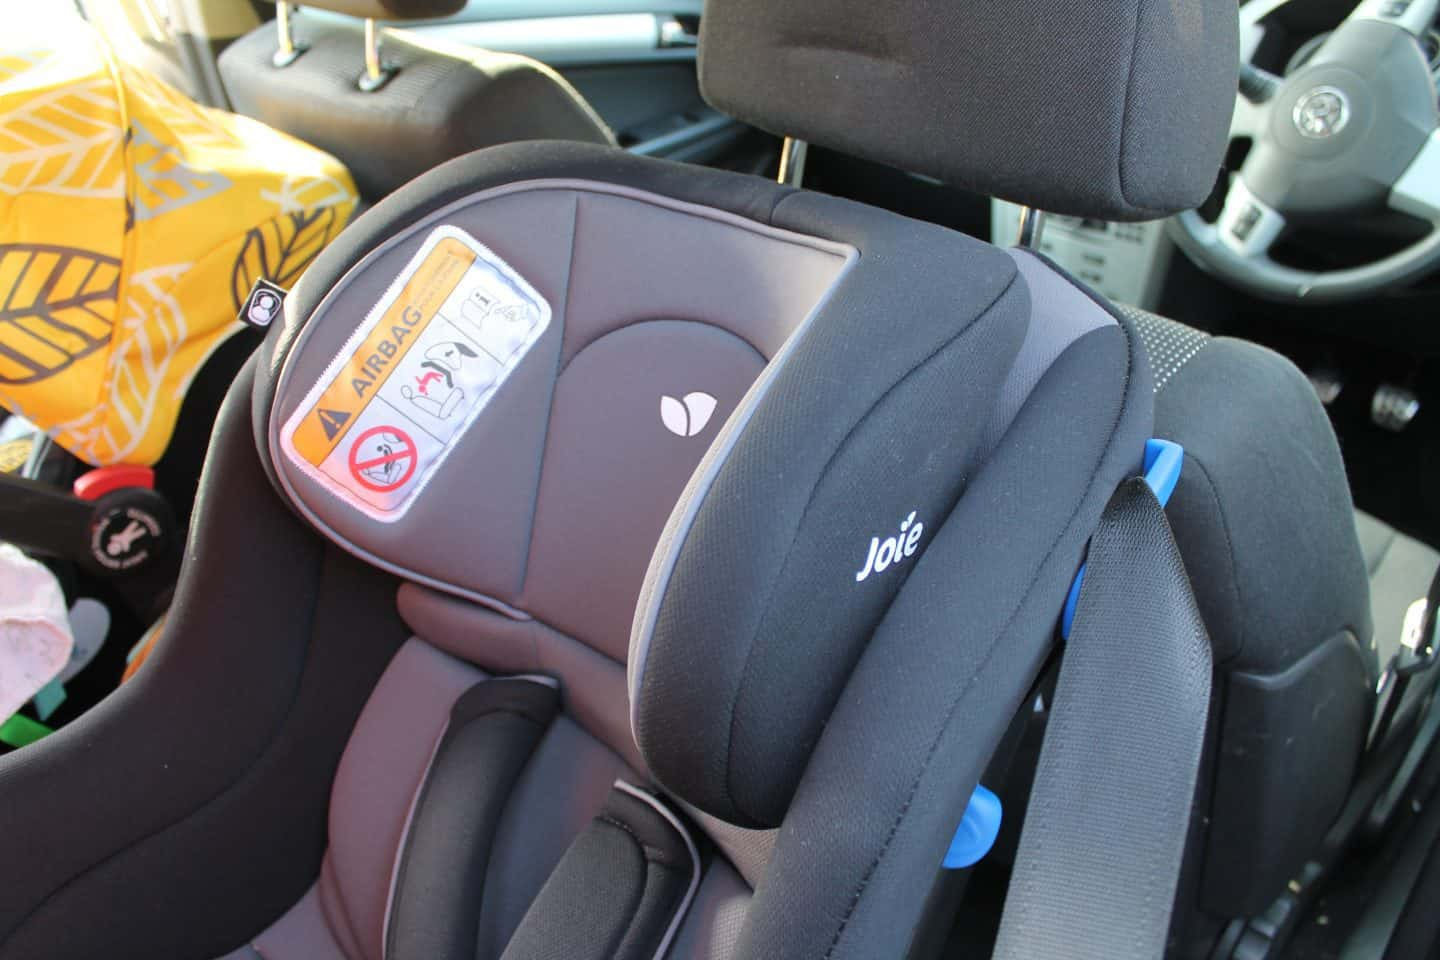 Joie Isofix Base Uk Review Joie Steadi Rear Facing Car Seat